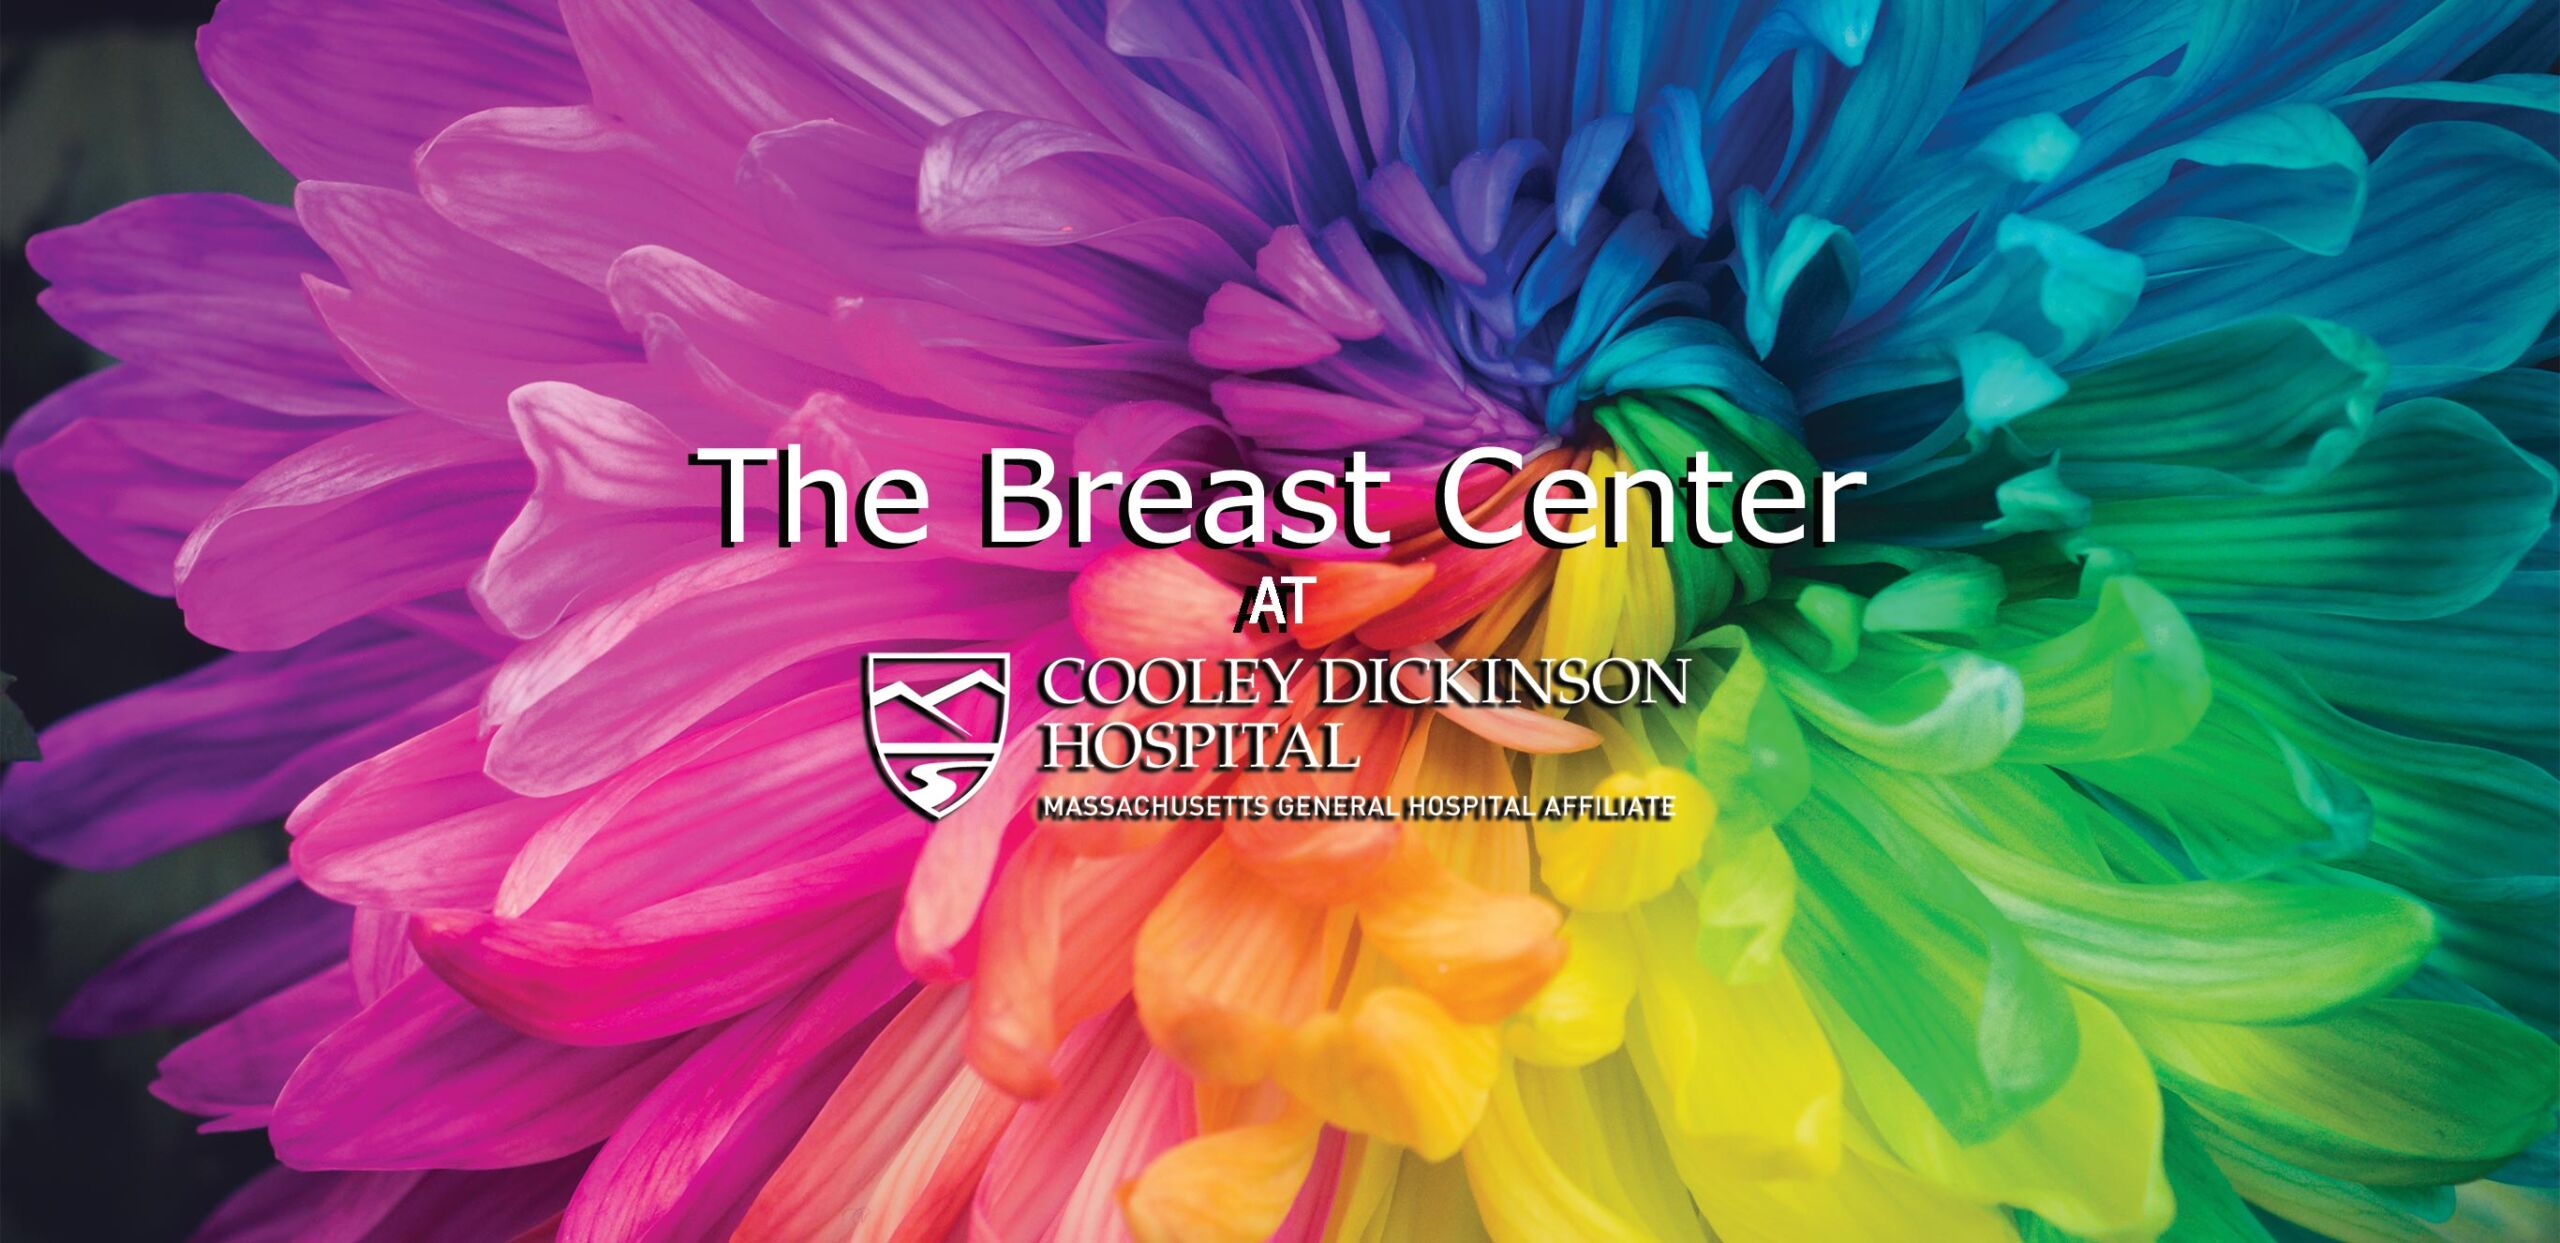 The Breast Center at Cooley Dickinson Hospital